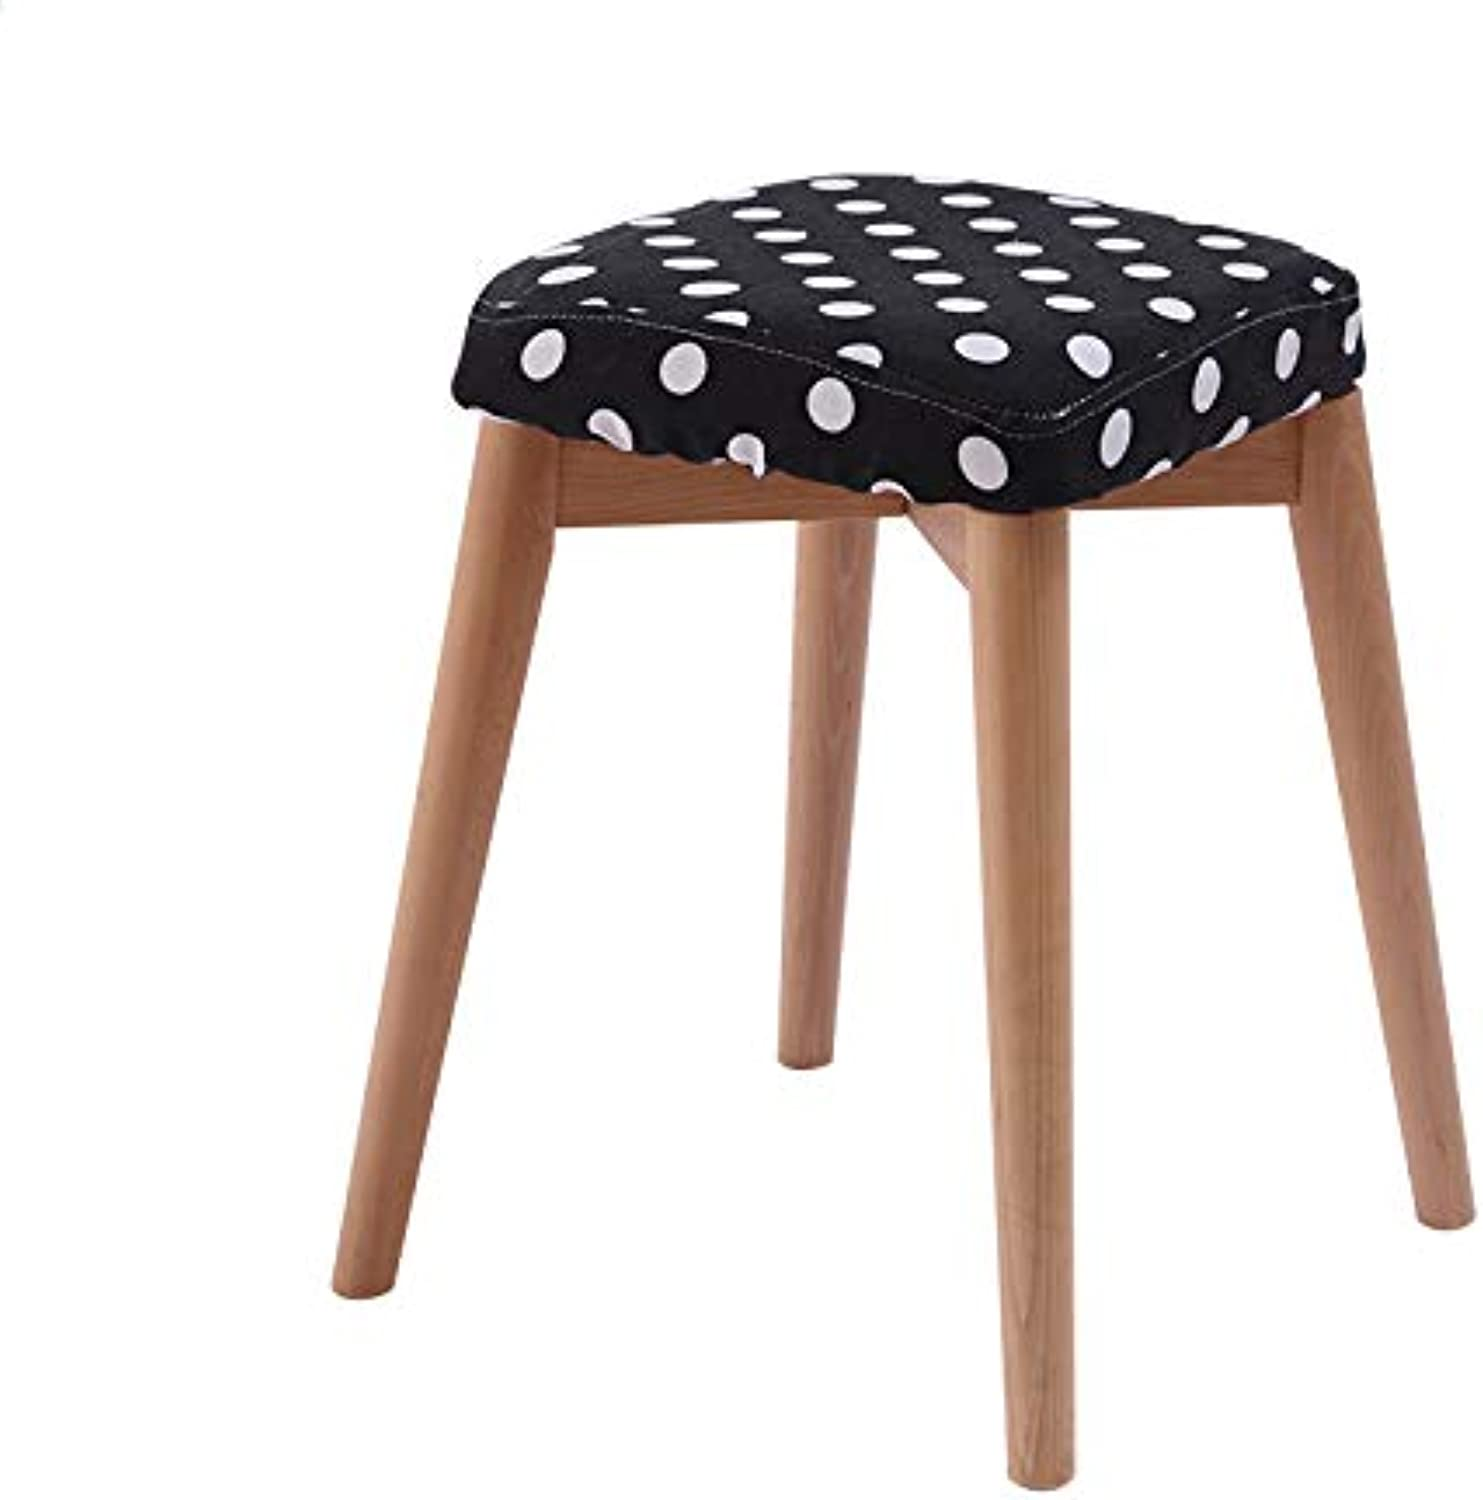 Stool Solid Wood Stool Dining Stool Simple and Modern Removable seat Cover Square Size  46  33  33cm (color   I)